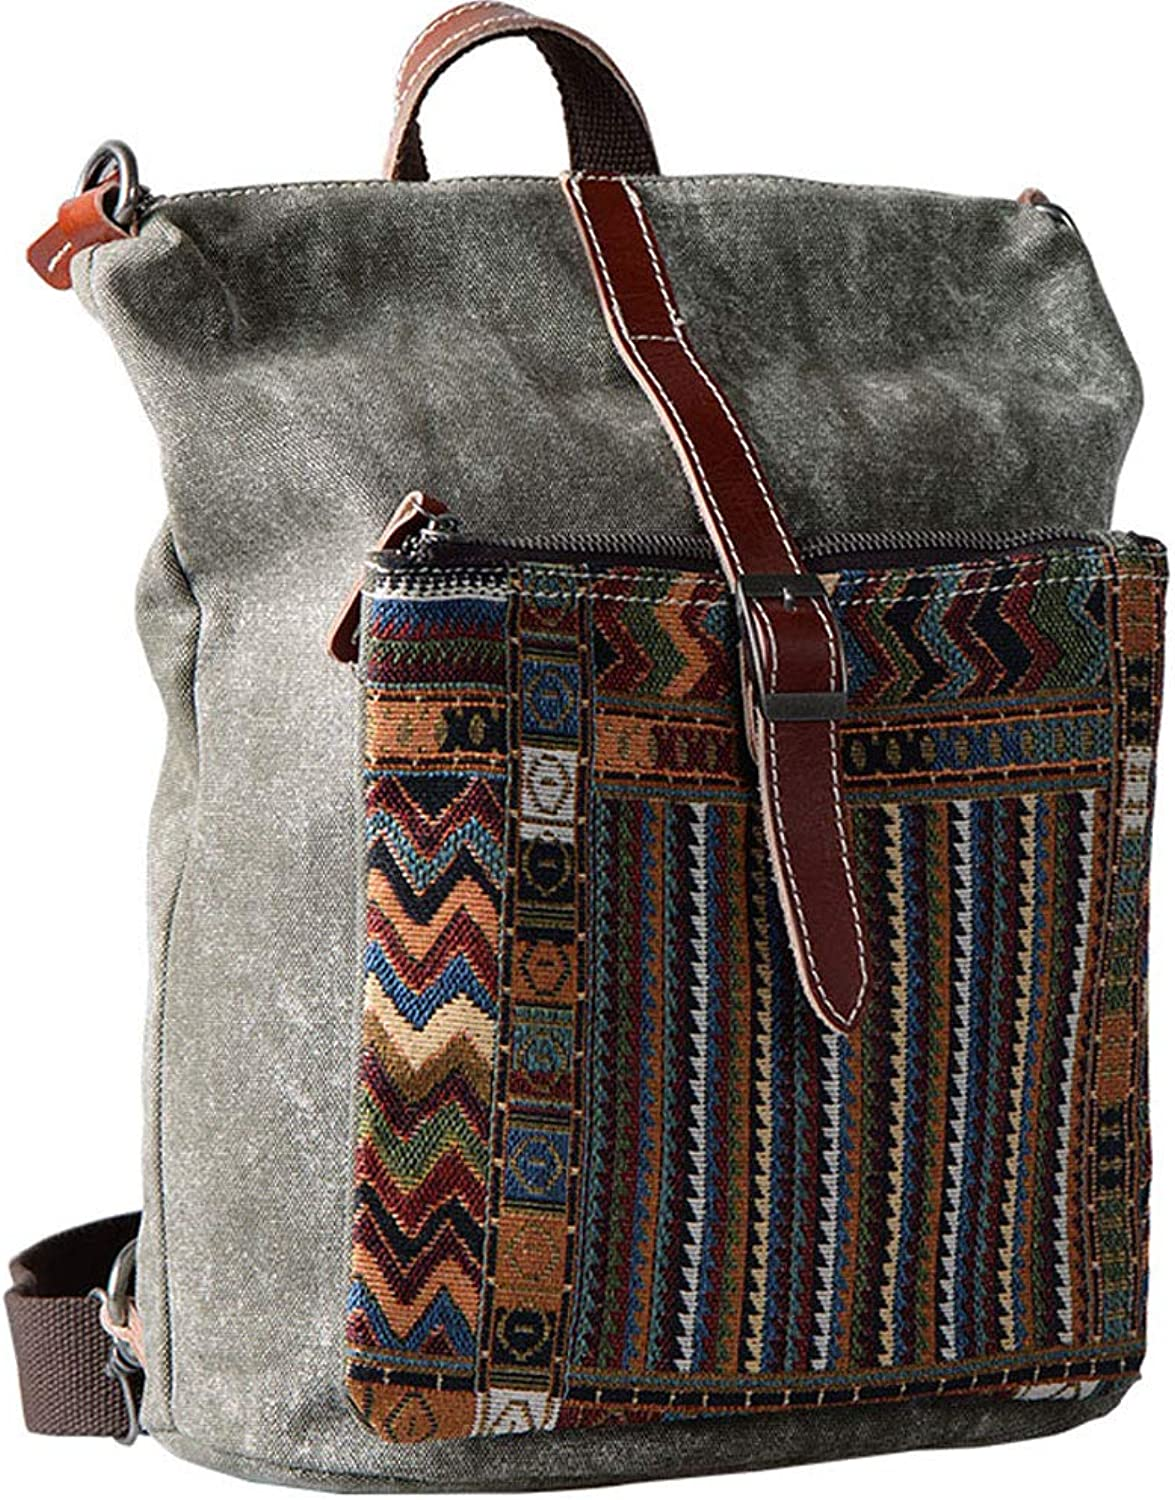 Backpack MultiFunction Ladies Backpack Korean Version of The New Casual Canvas Bag Retro Ethnic Style College Bag